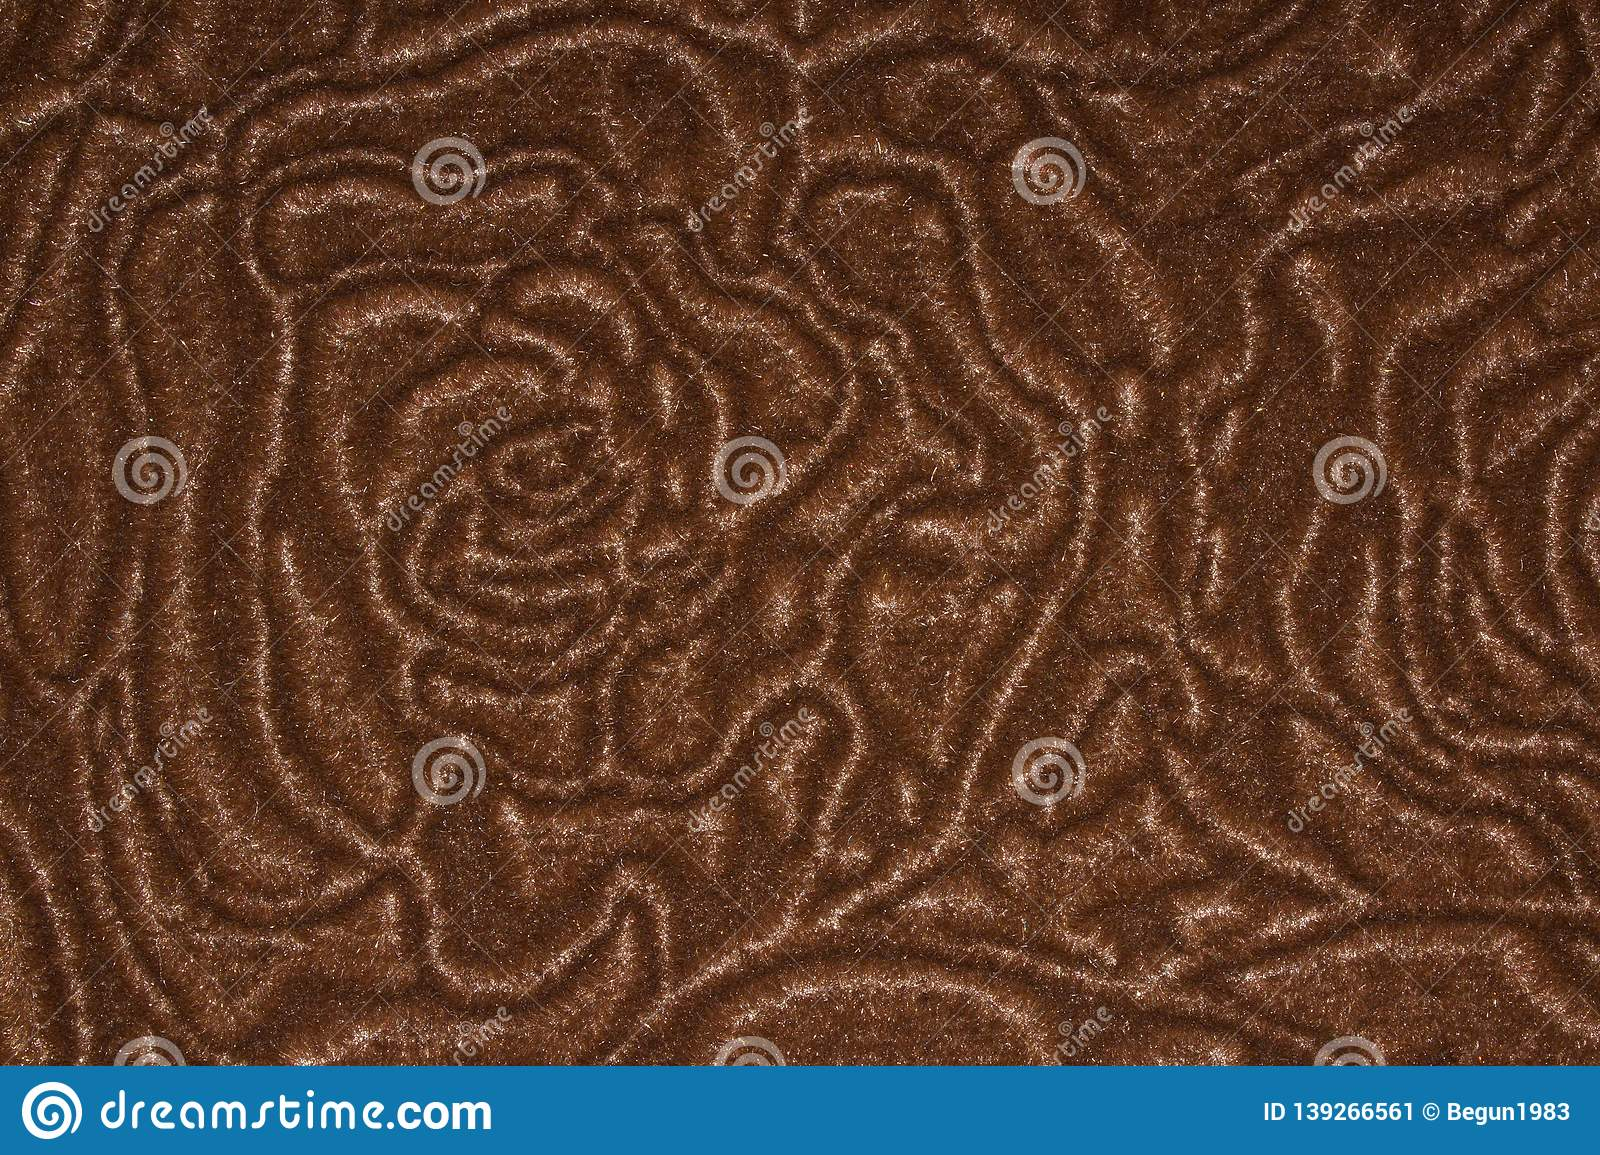 Texture Of Velour Fabric With Flower Patterns. Stock Image - Image of design, fashion: 139266561